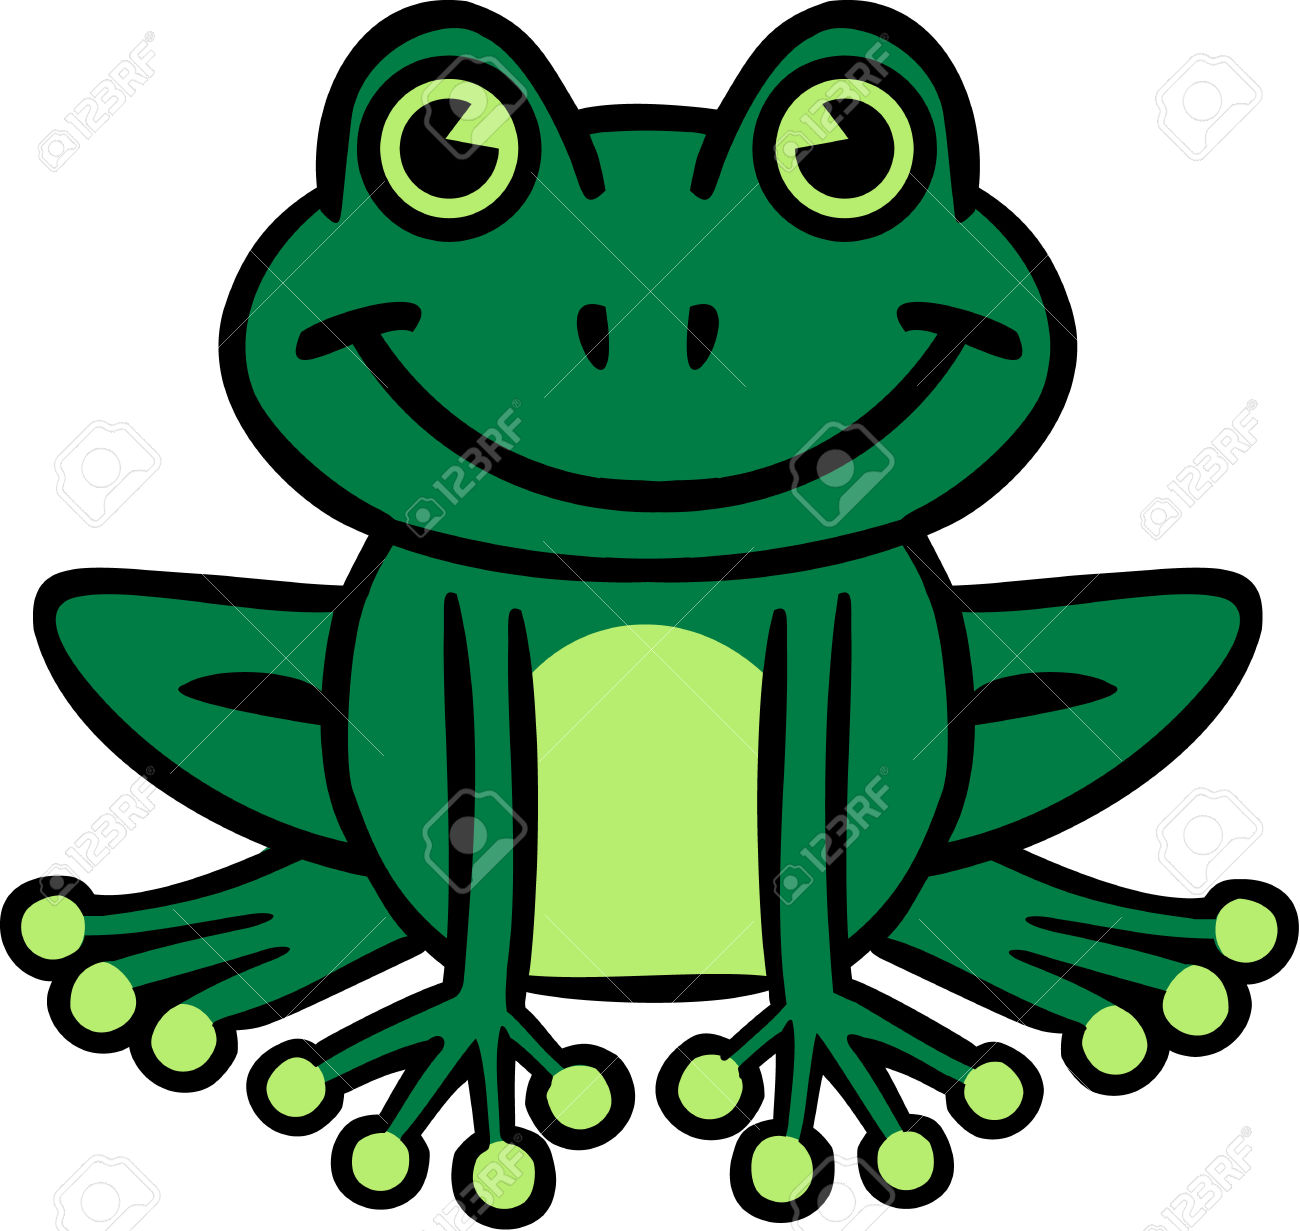 Smiling Frog Cartoon Royalty Free Cliparts, Vectors, And Stock.